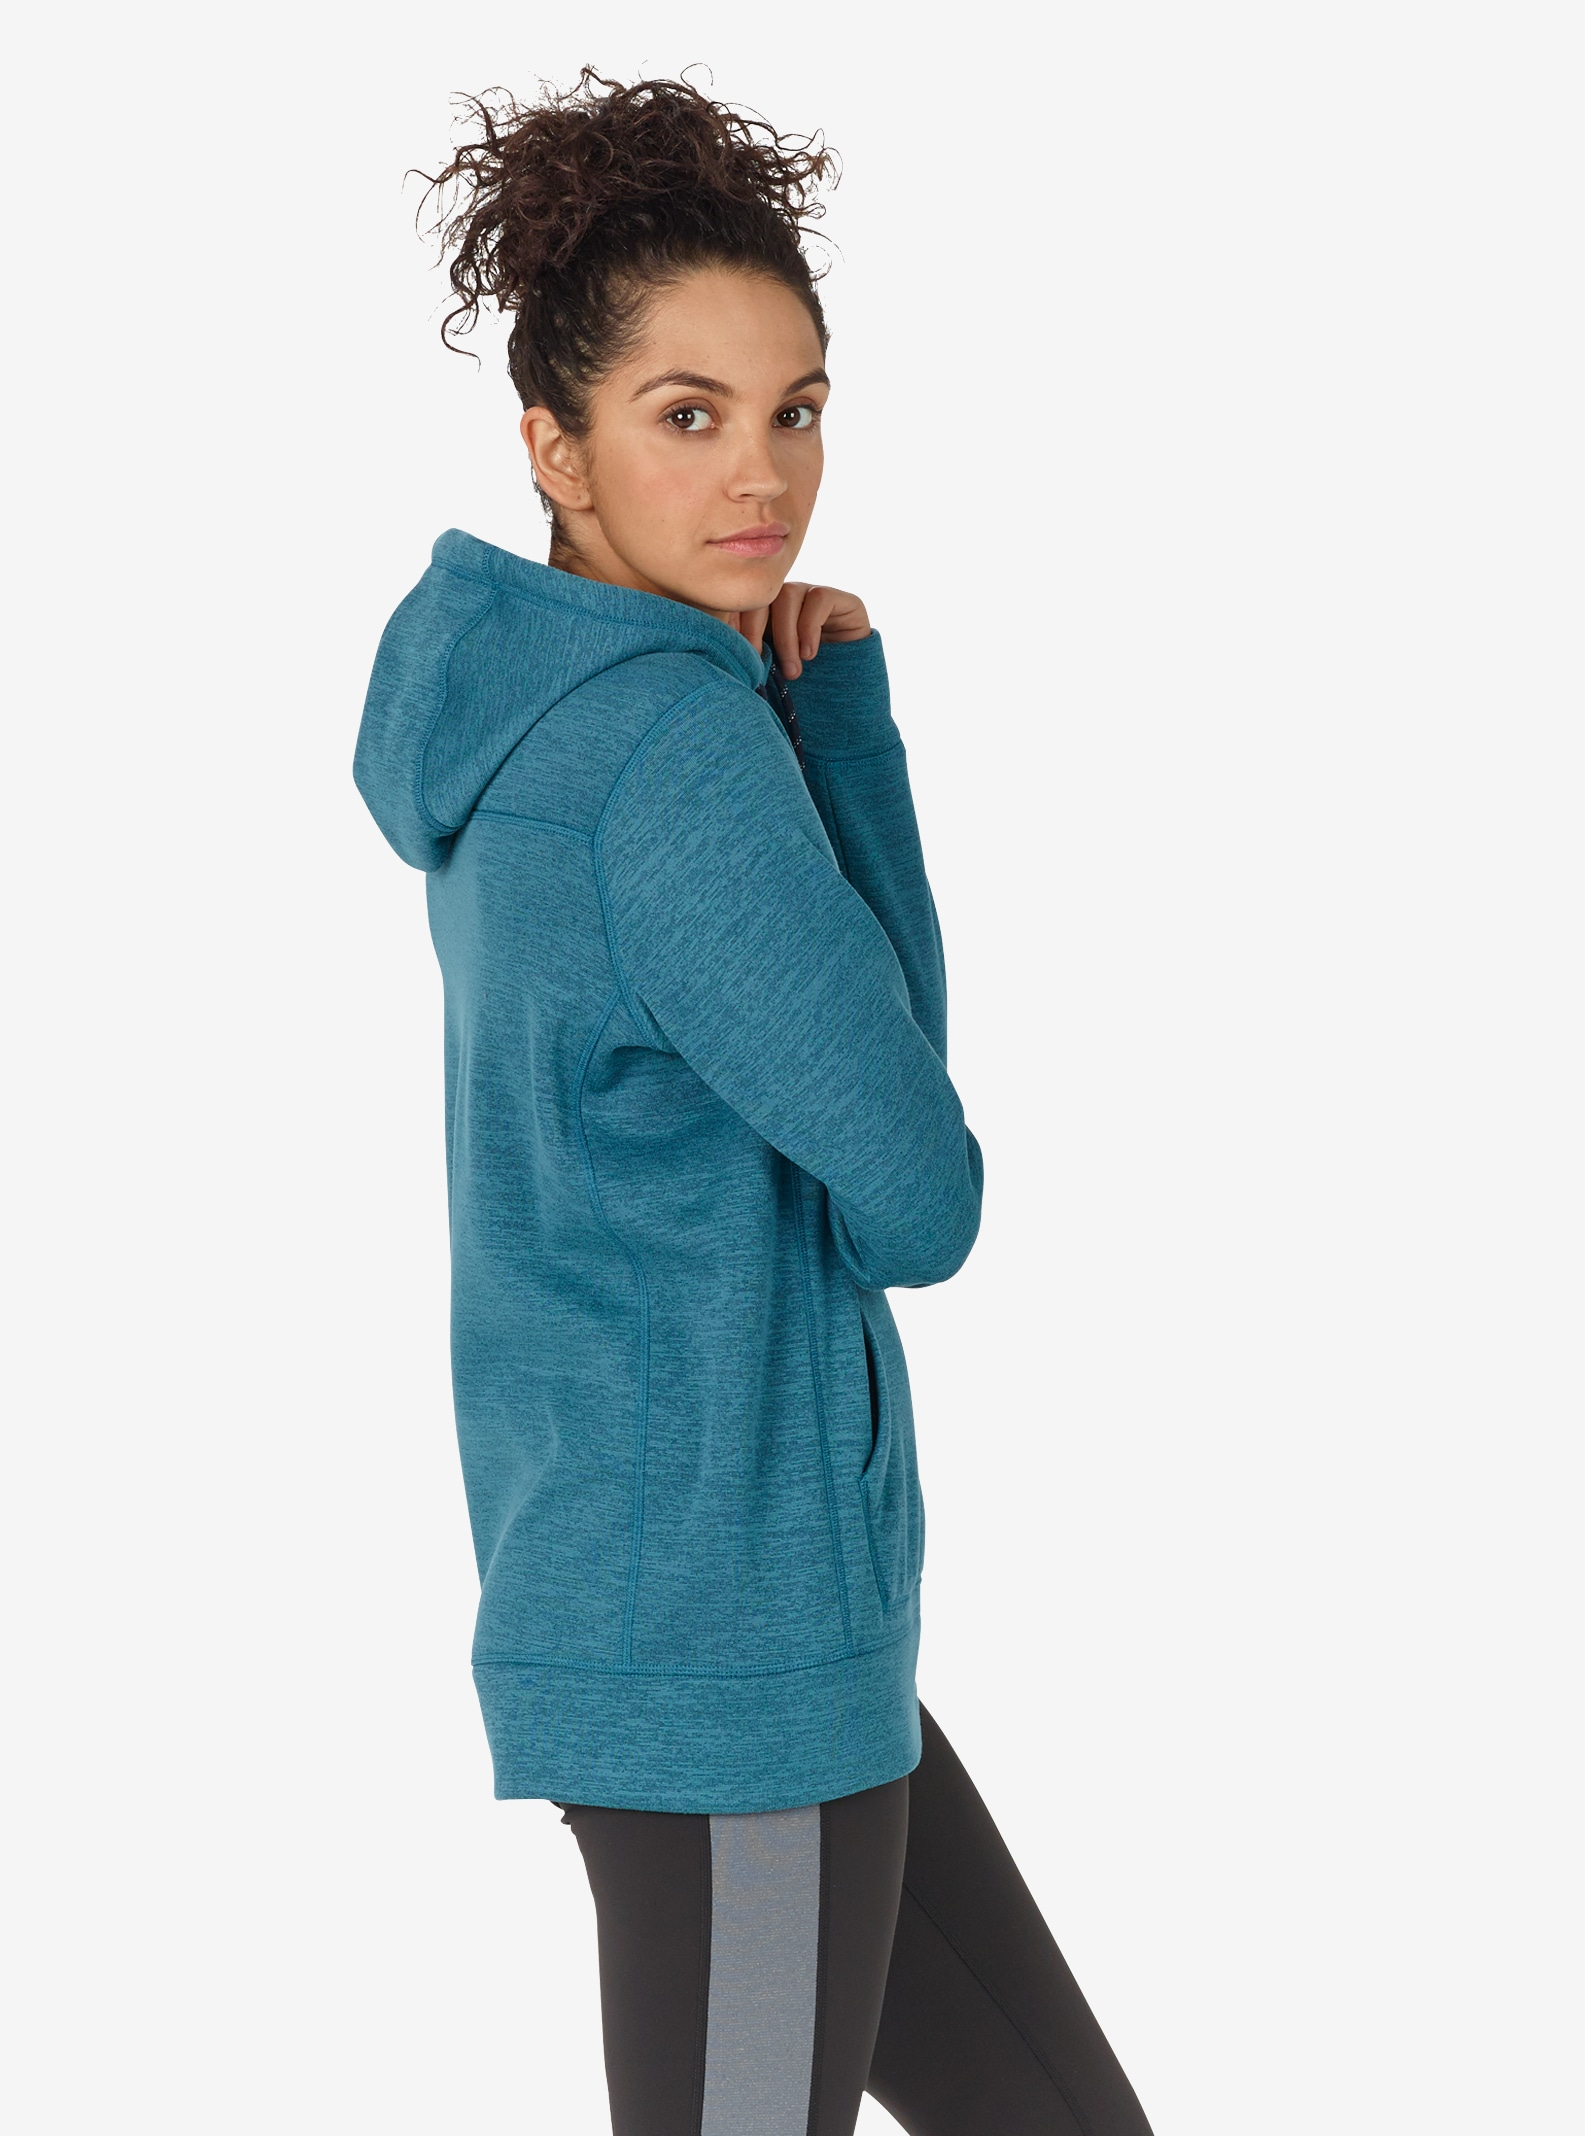 Women's Burton Quartz Pullover shown in Jaded Heather